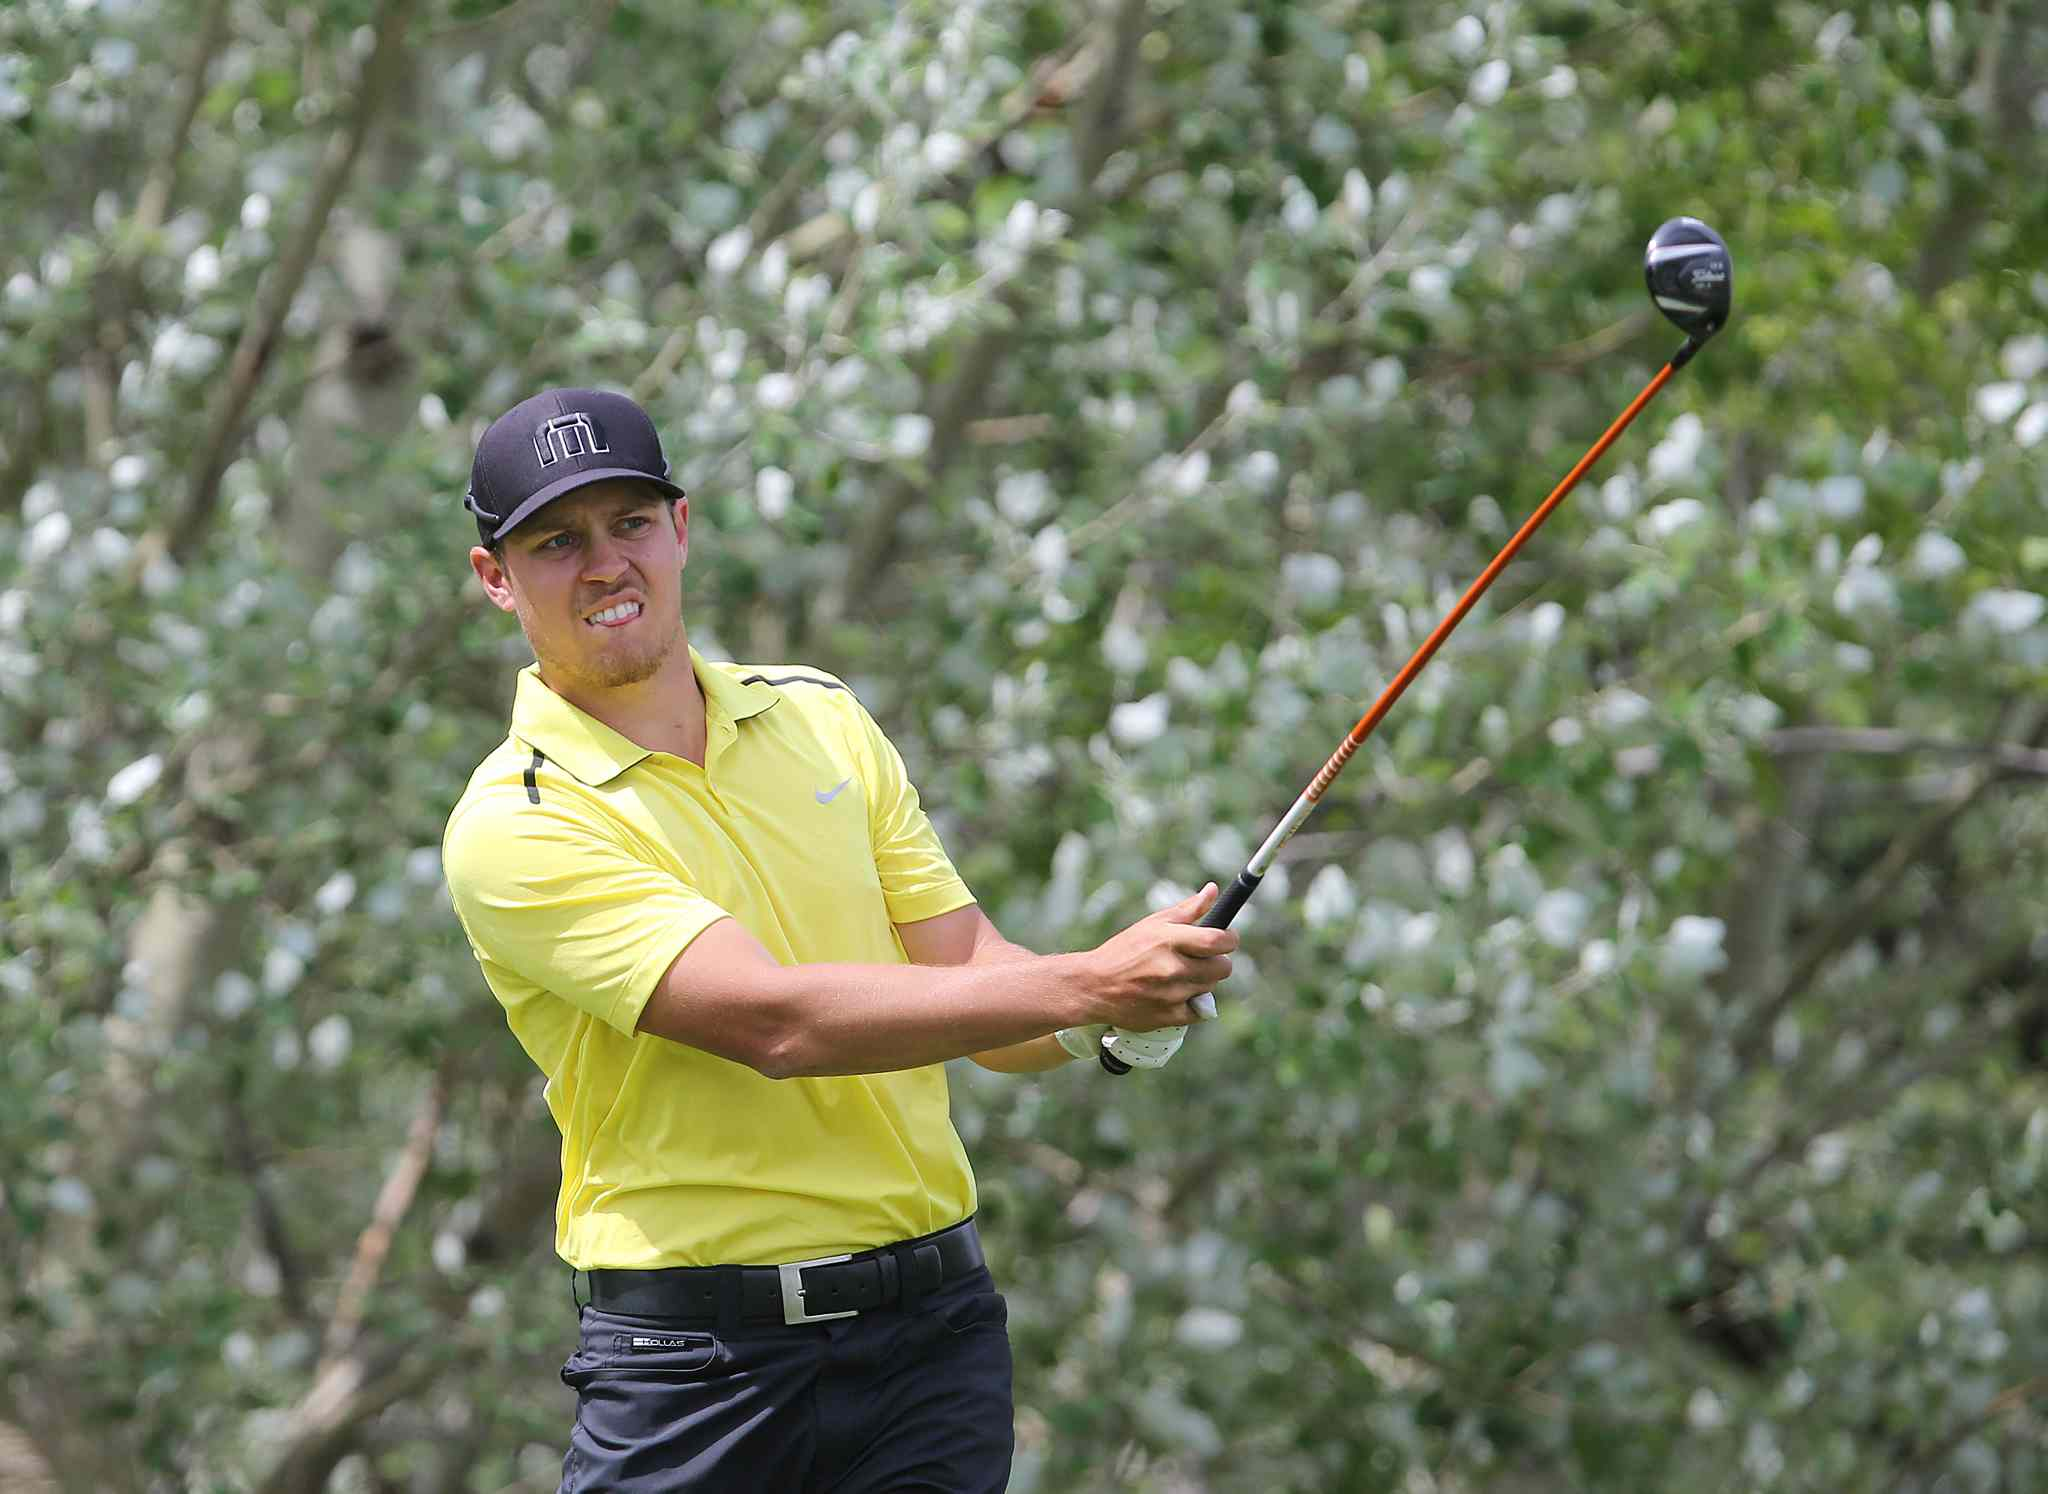 Manitoba's Josh Wytinck fired a 1-under 71 Wednesday. His 1-over total after two rounds is good for 10th place overall.